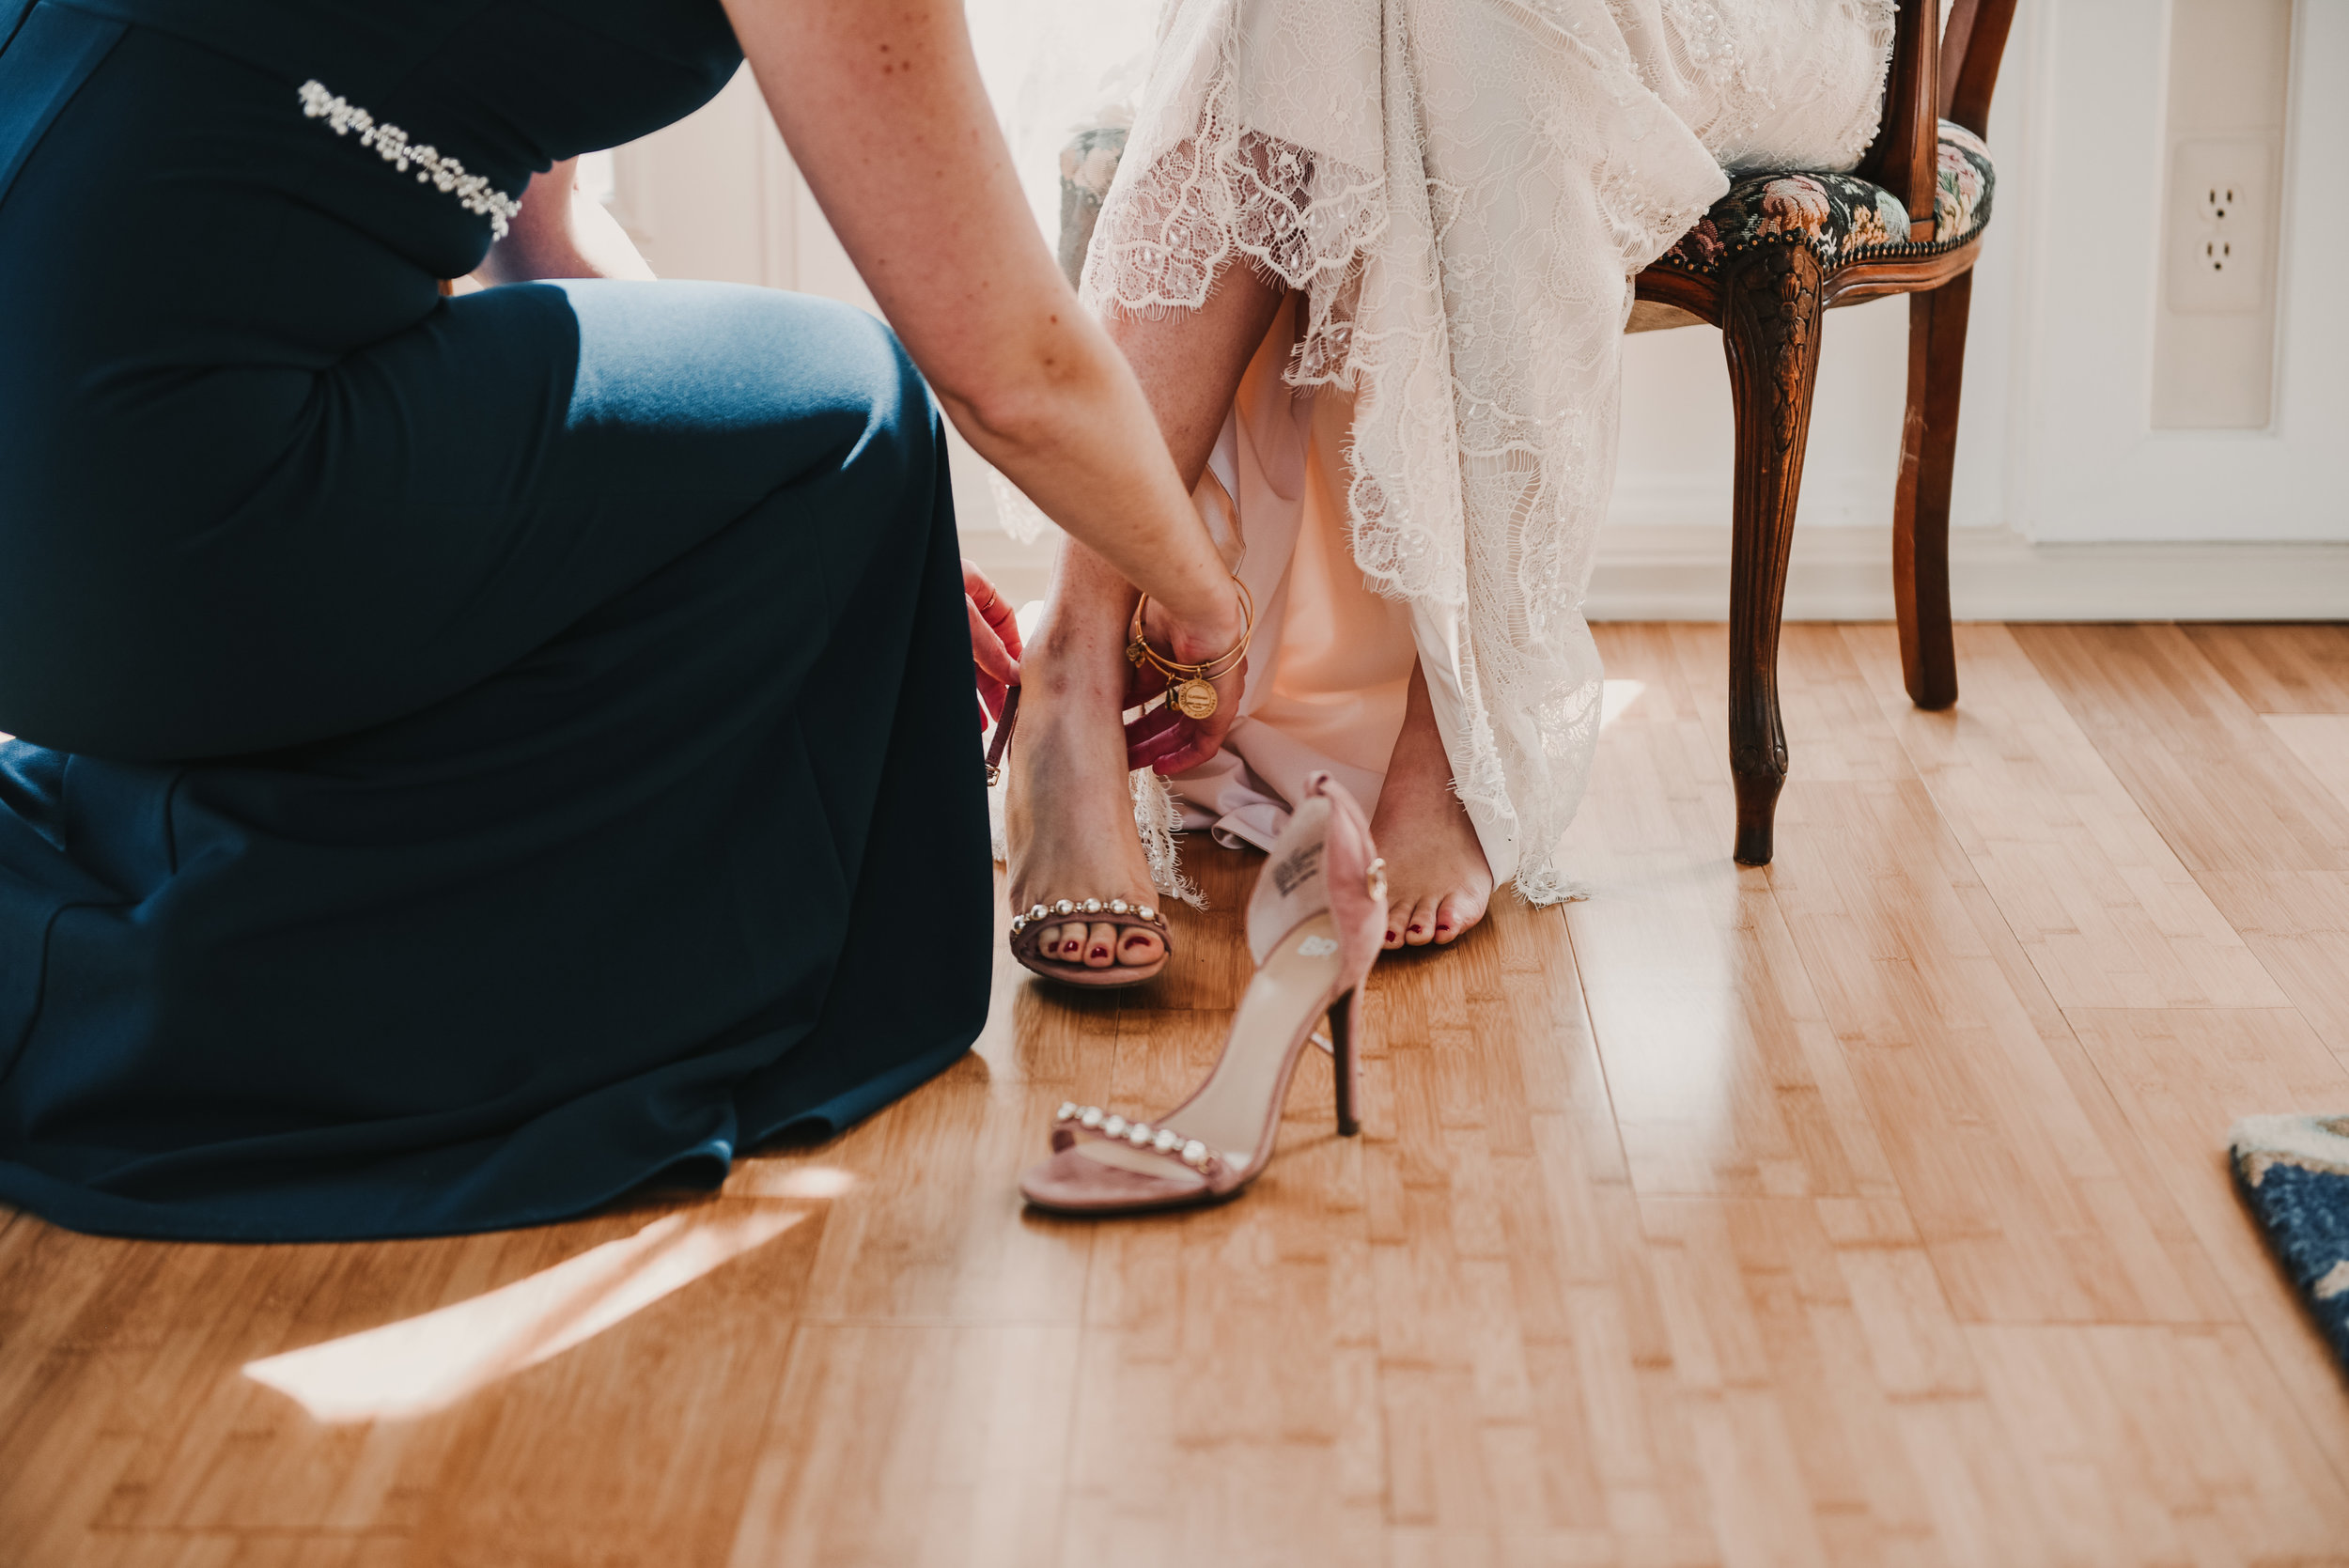 Maid of honor putting on the brides shoes